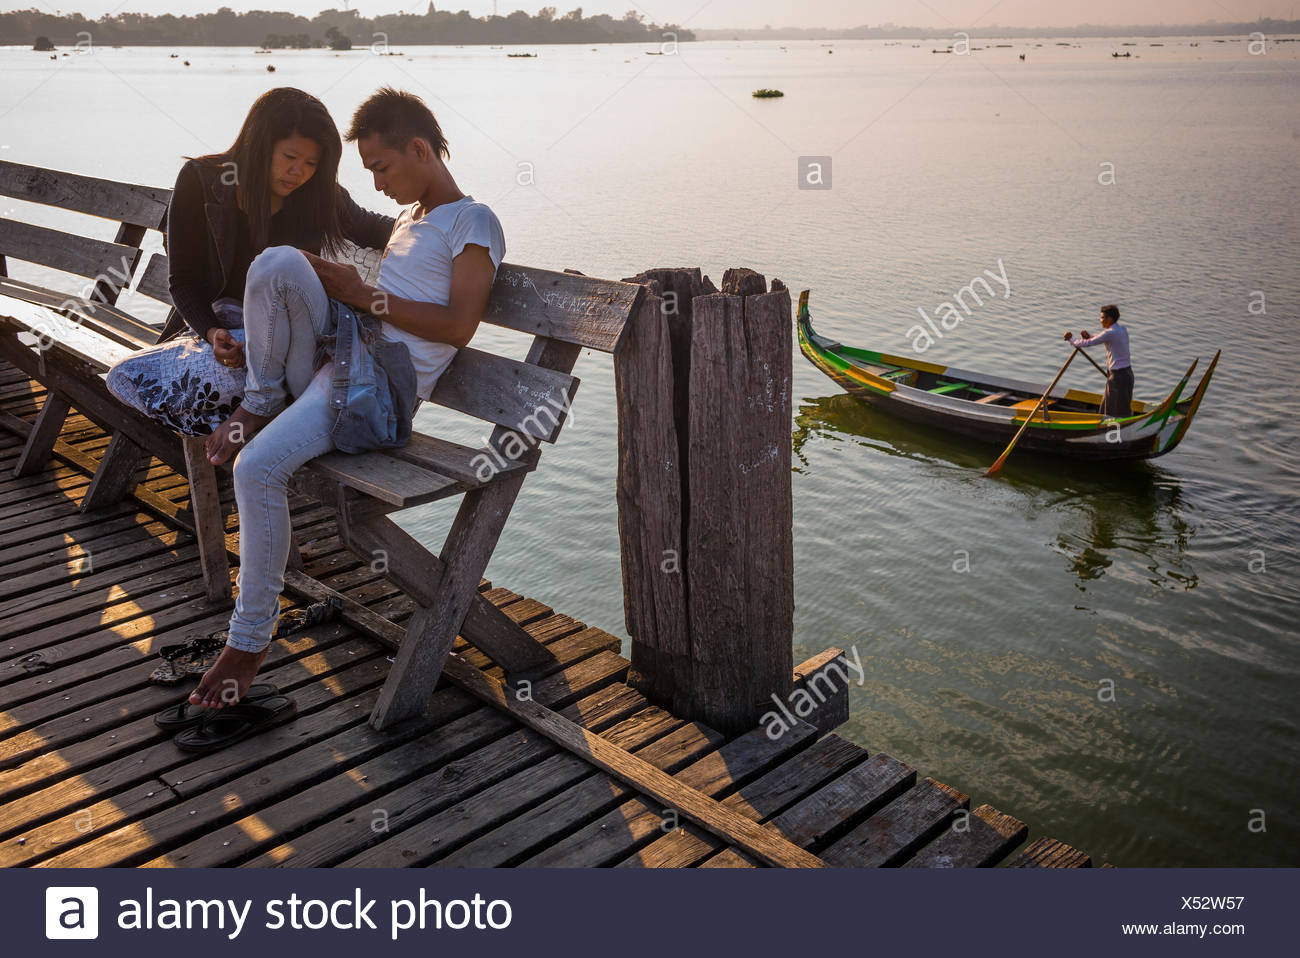 A young couple sit on a pier bench as a fishing boat passes behind them. - Stock Image